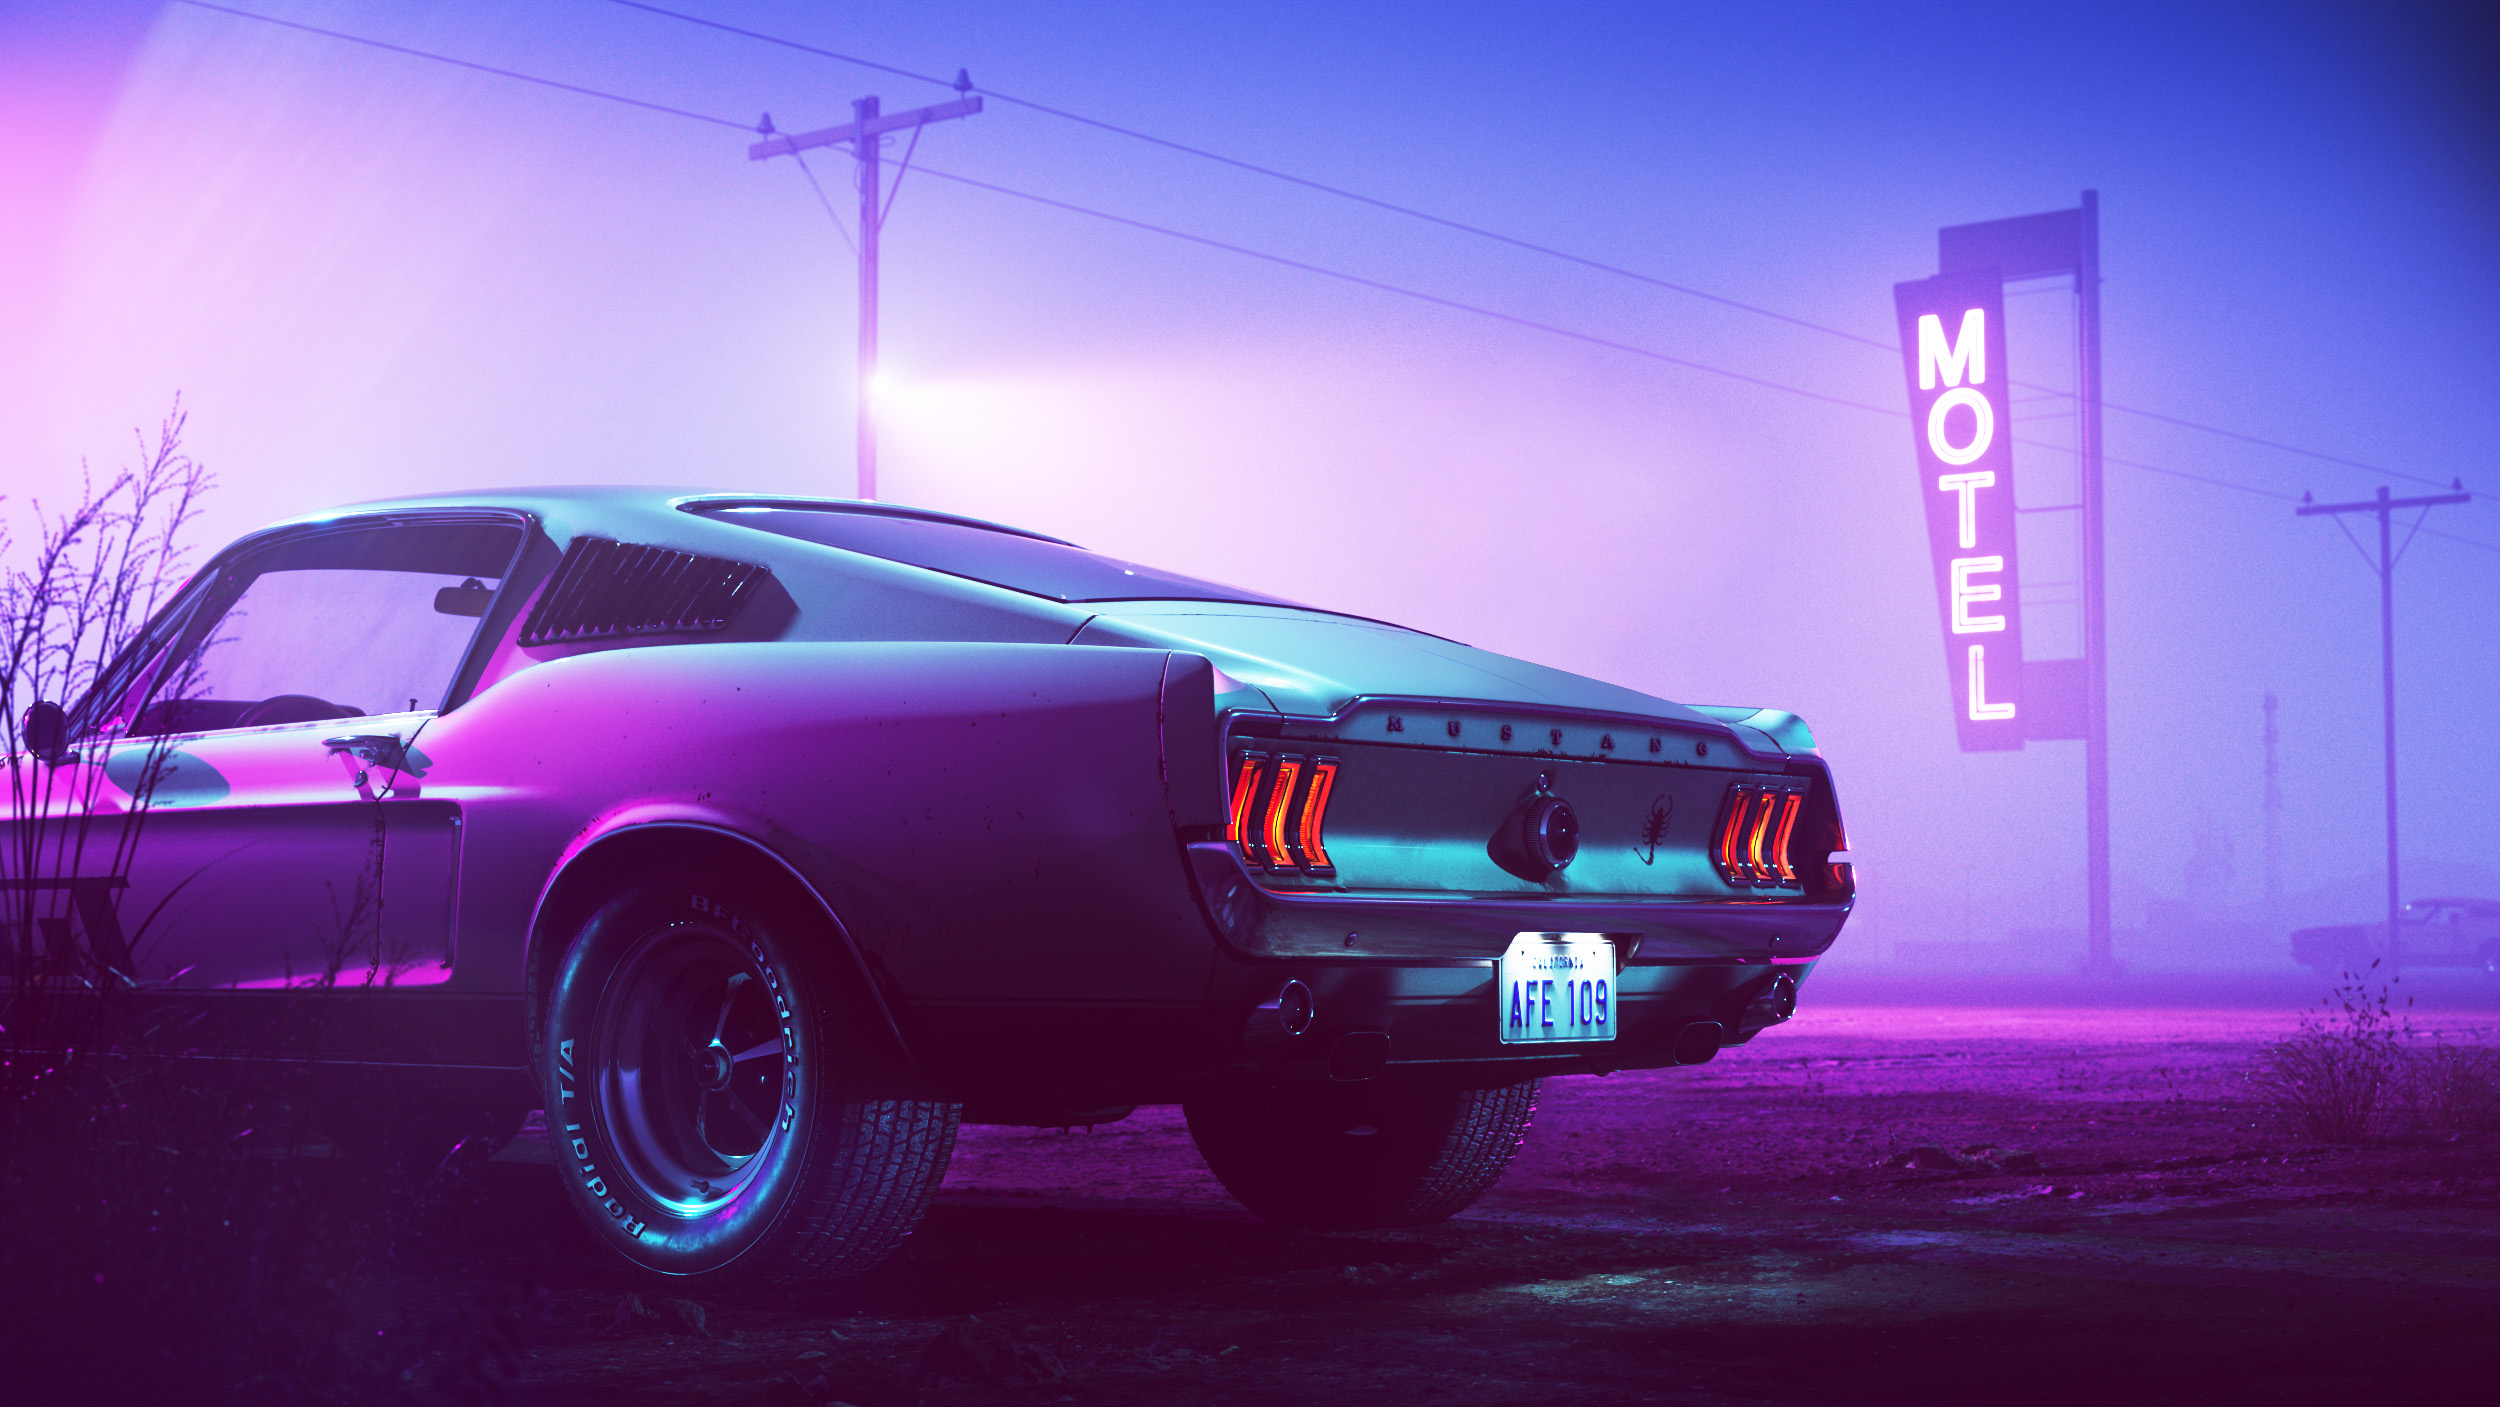 Mustang Scorpion Motel Colorsponge No Person Edit Retro